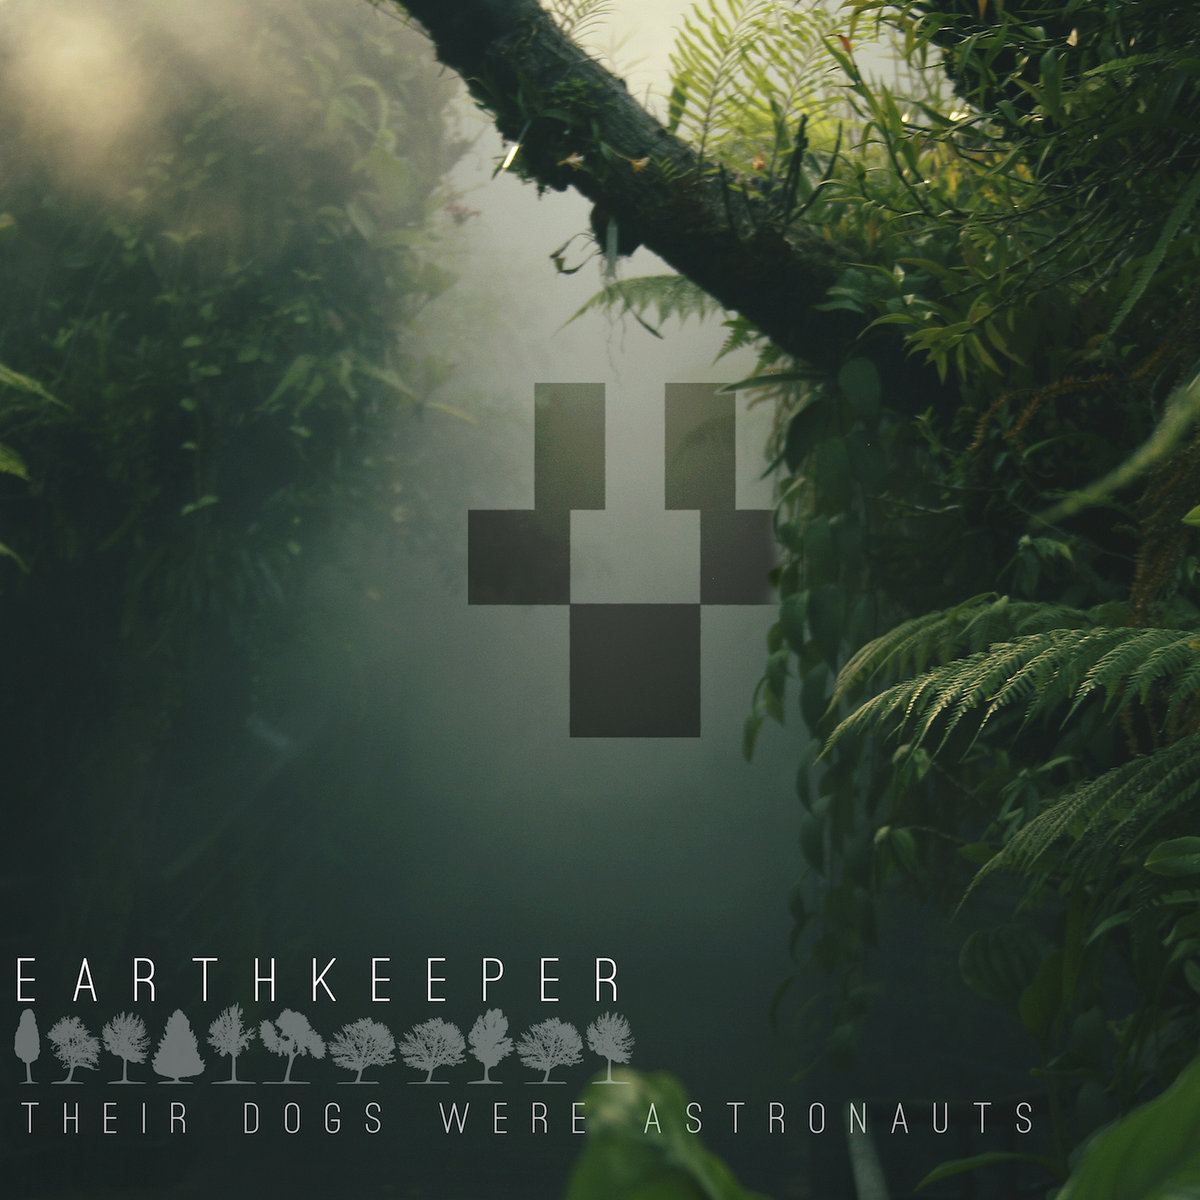 Their Dogs Were Astronauts - Earthkeeper (artwork)